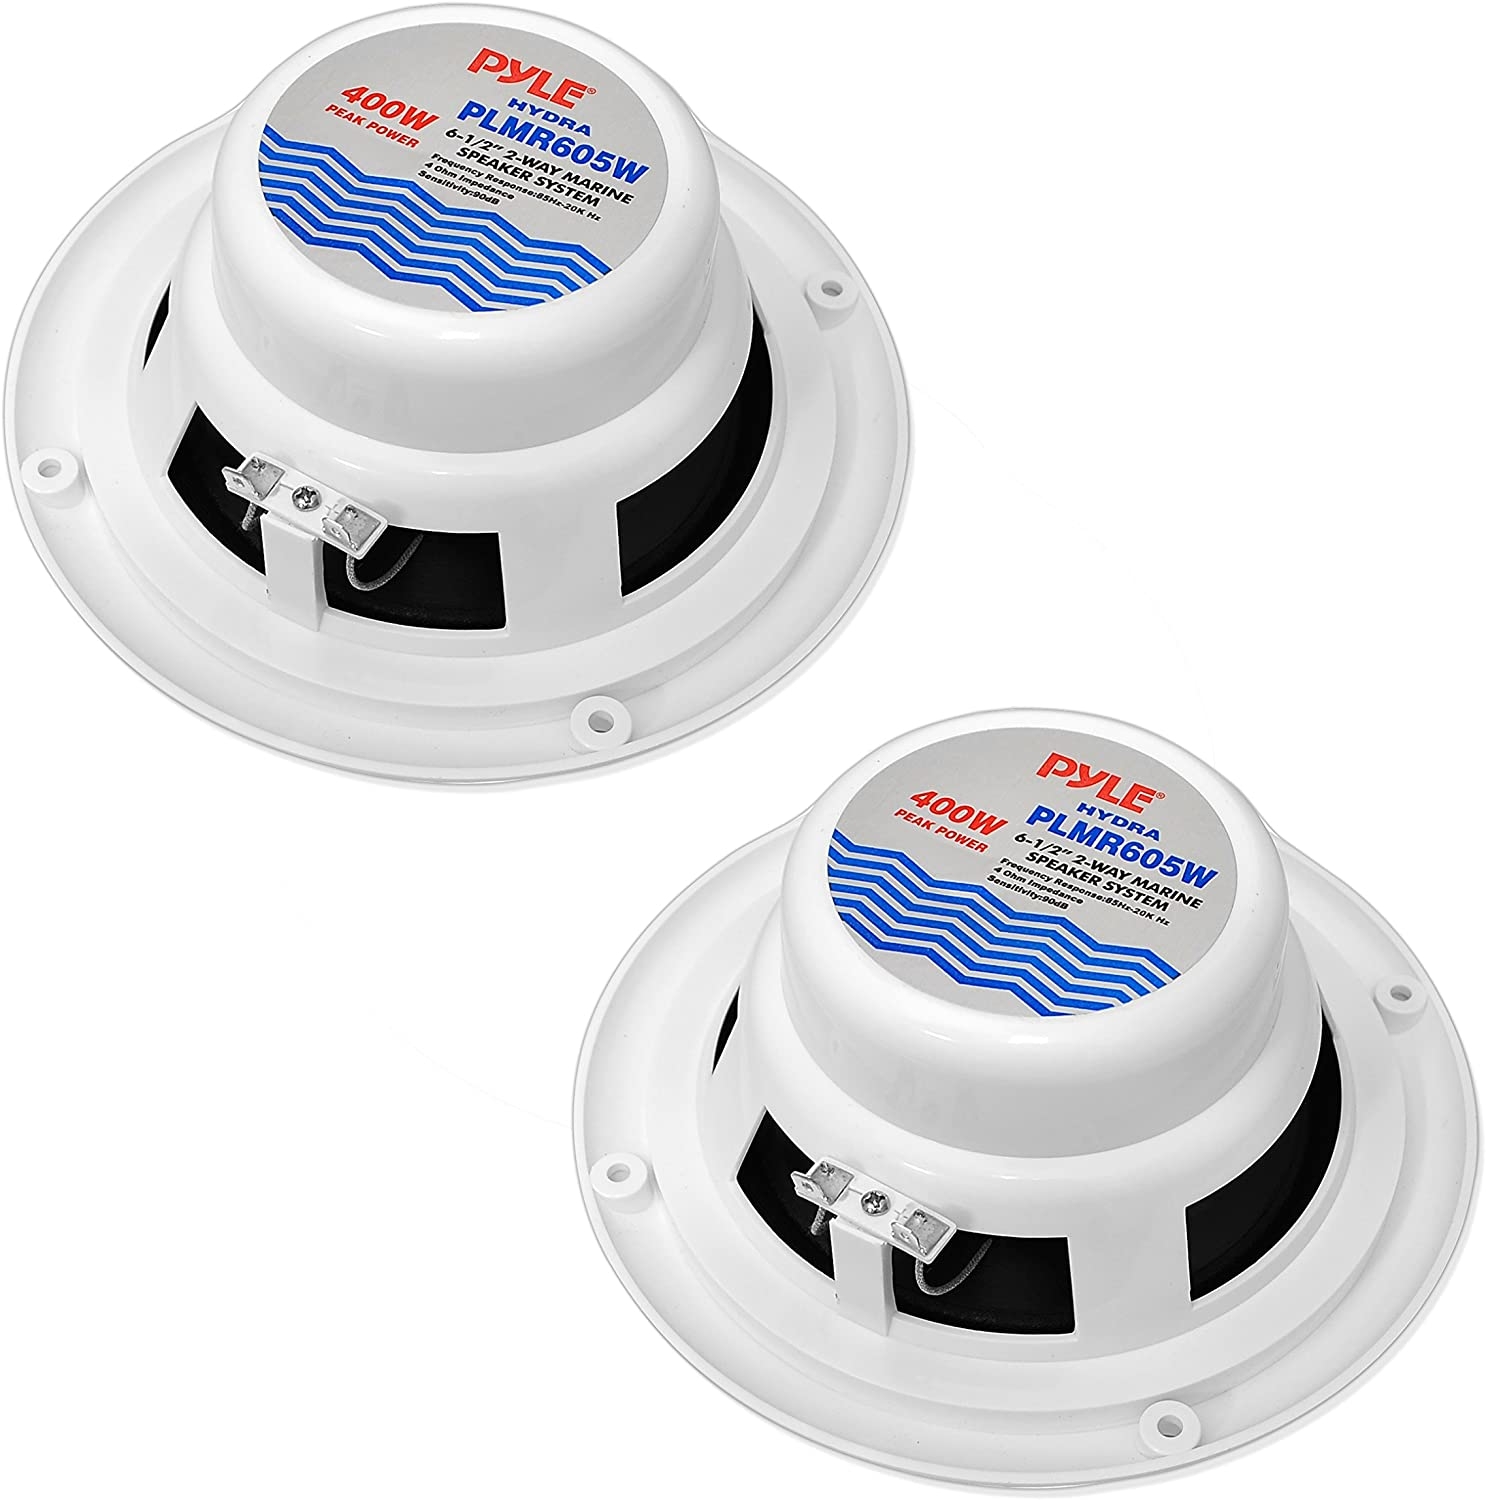 6.5 Inch Dual Marine Speakers Sound Around PLMR605B 2 Way Waterproof and Weather Resistant Outdoor Audio Stereo Sound System with 400 Watt Power Black 1 Pair Polypropylene Cone and Butyl Rubber Surround PLMR605W